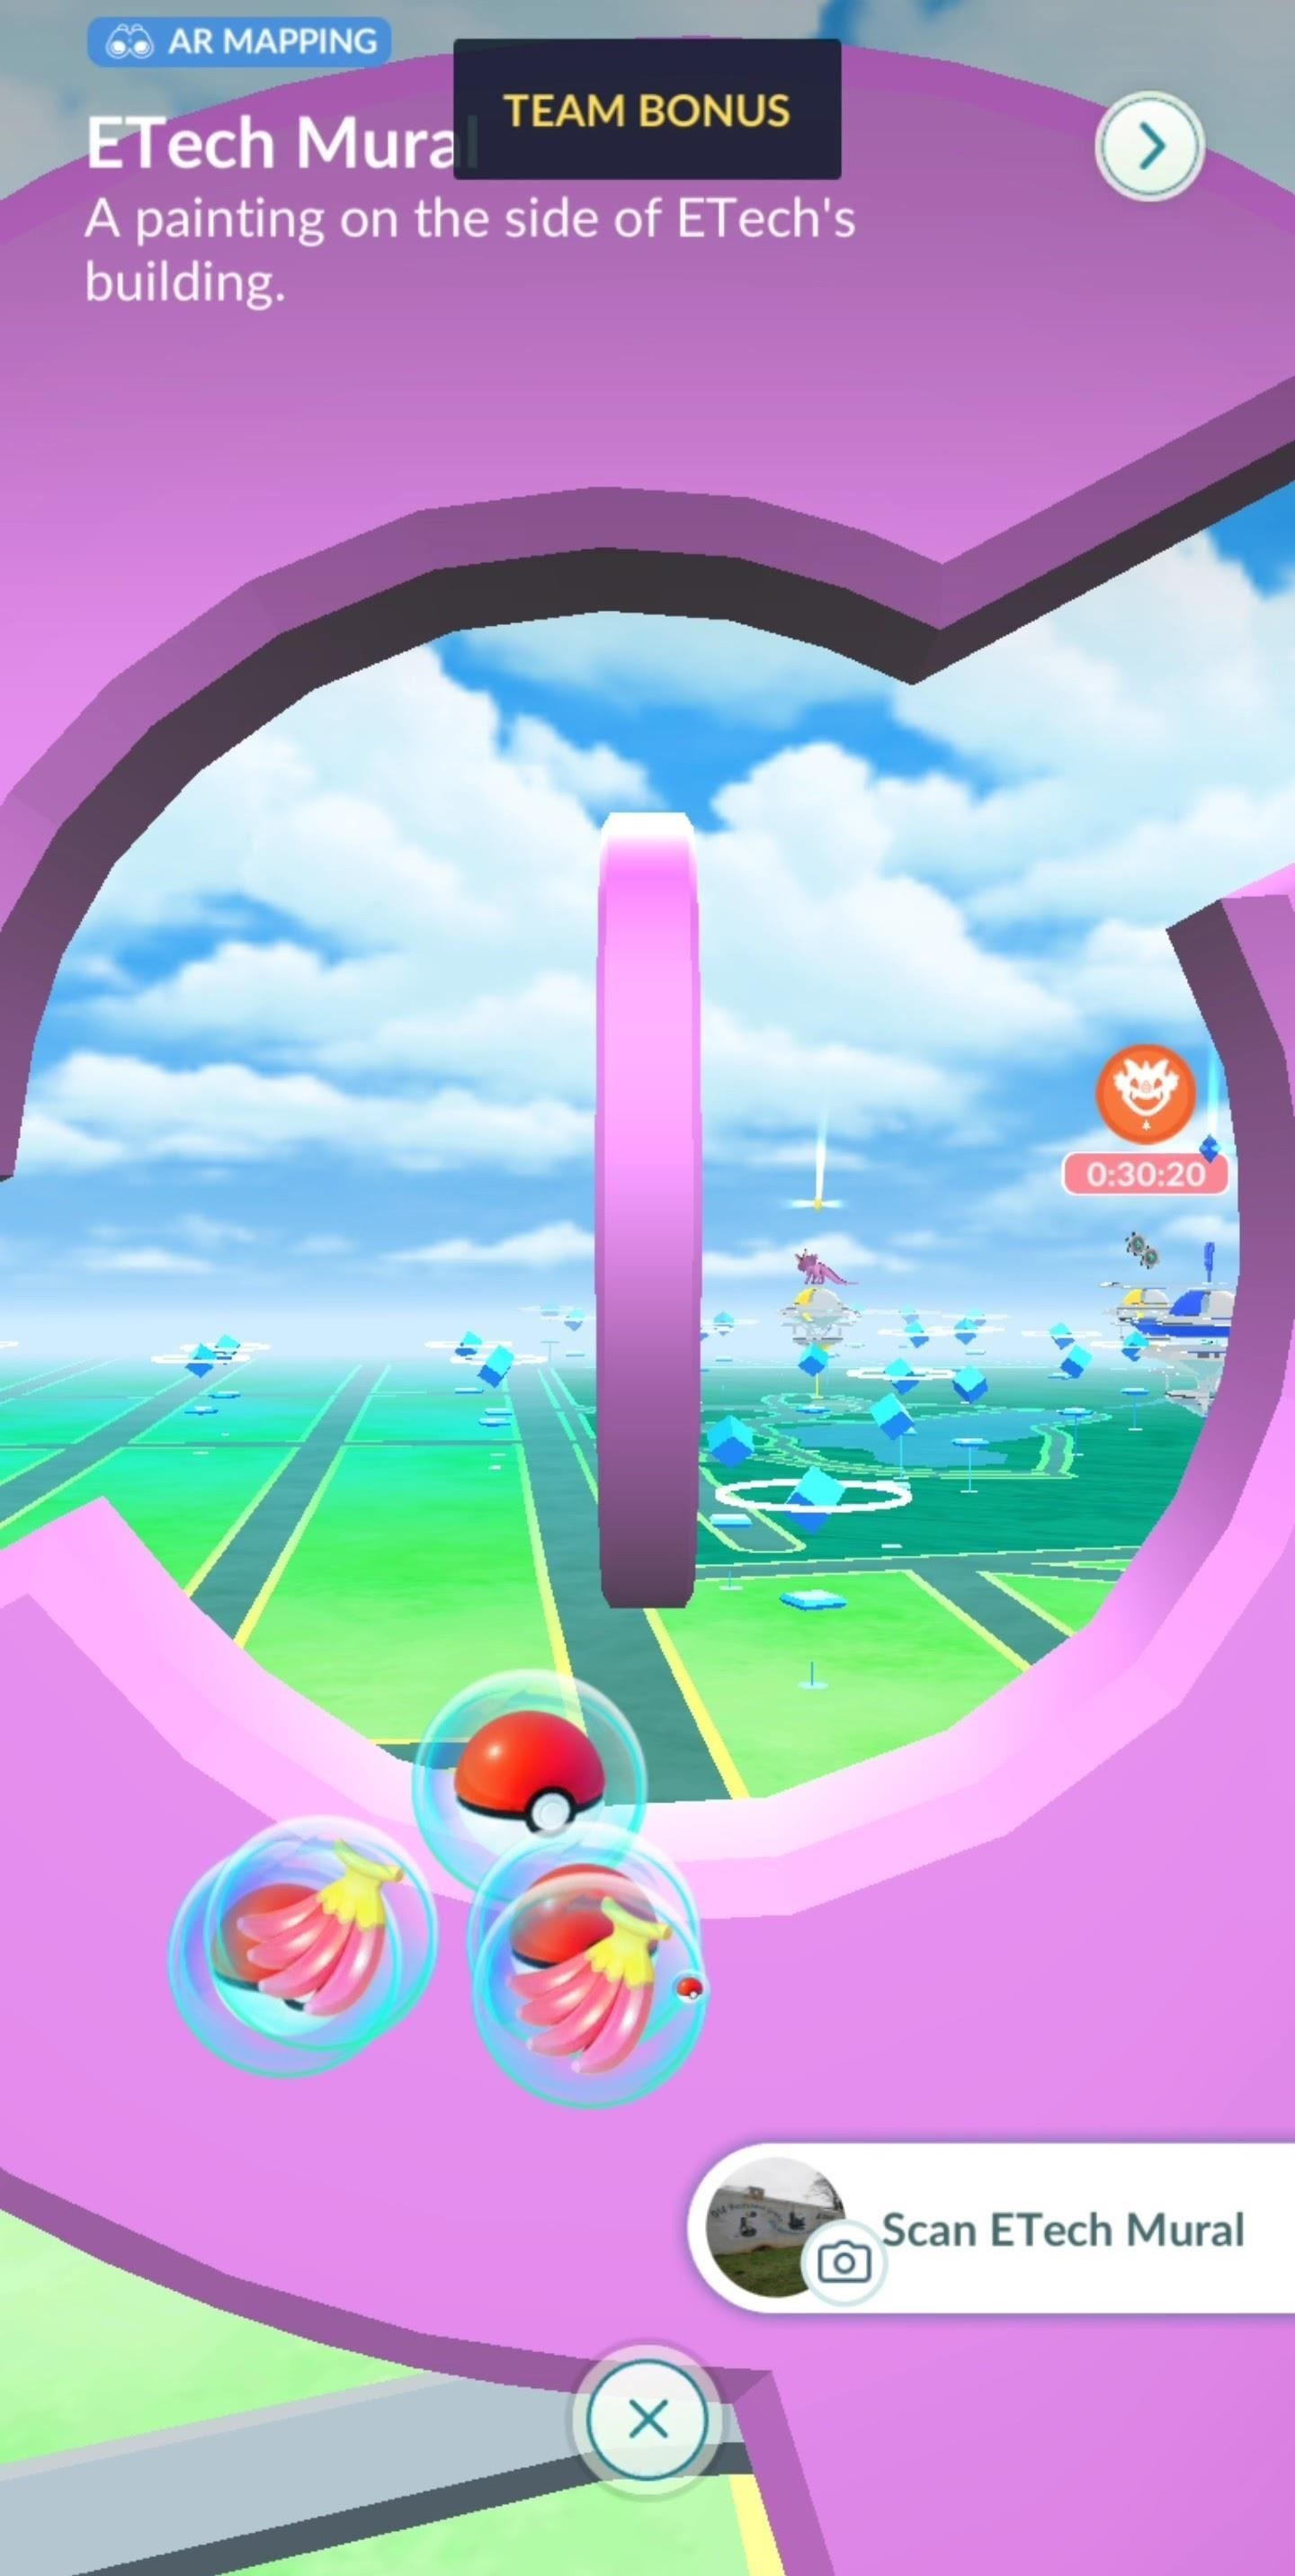 The Best Way to Avoid the New AR Mapping Tasks in Pokémon GO